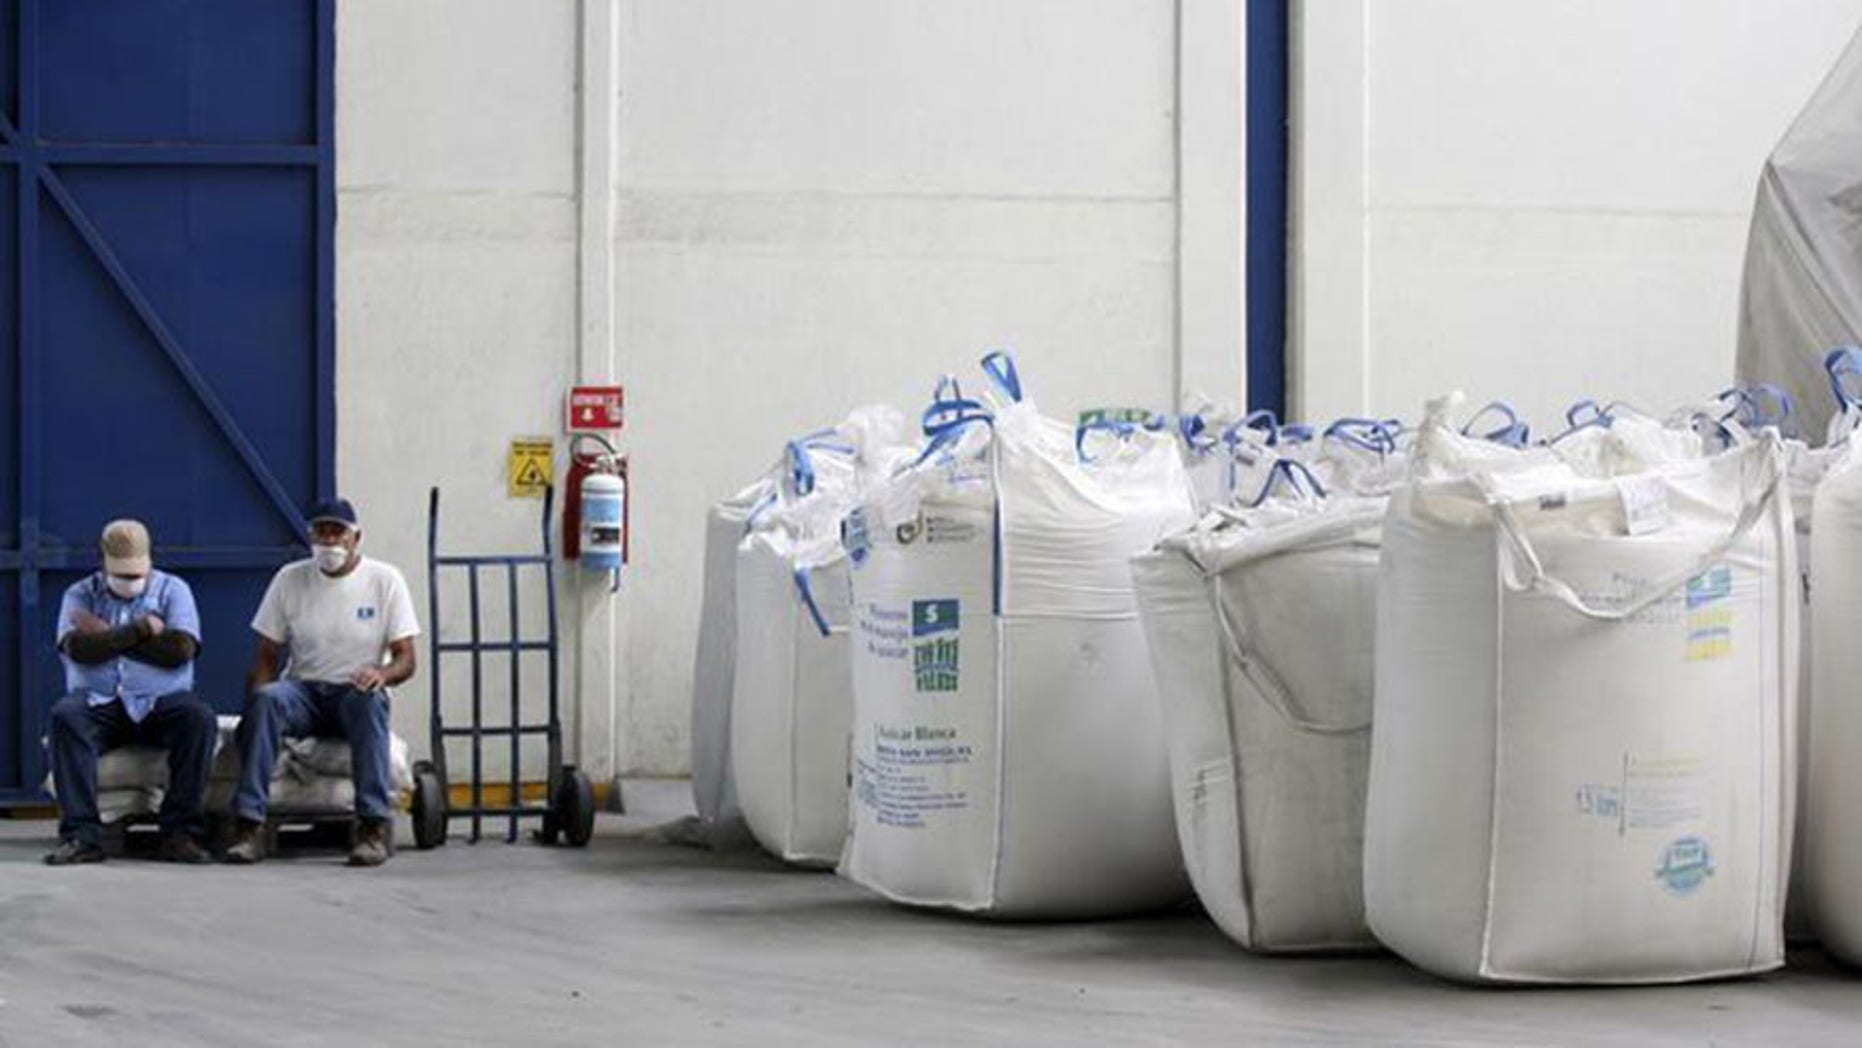 Workers sit next to bags containing sugar at the San Francisco Ameca sugar factory in the town of Ameca, Jalisco.